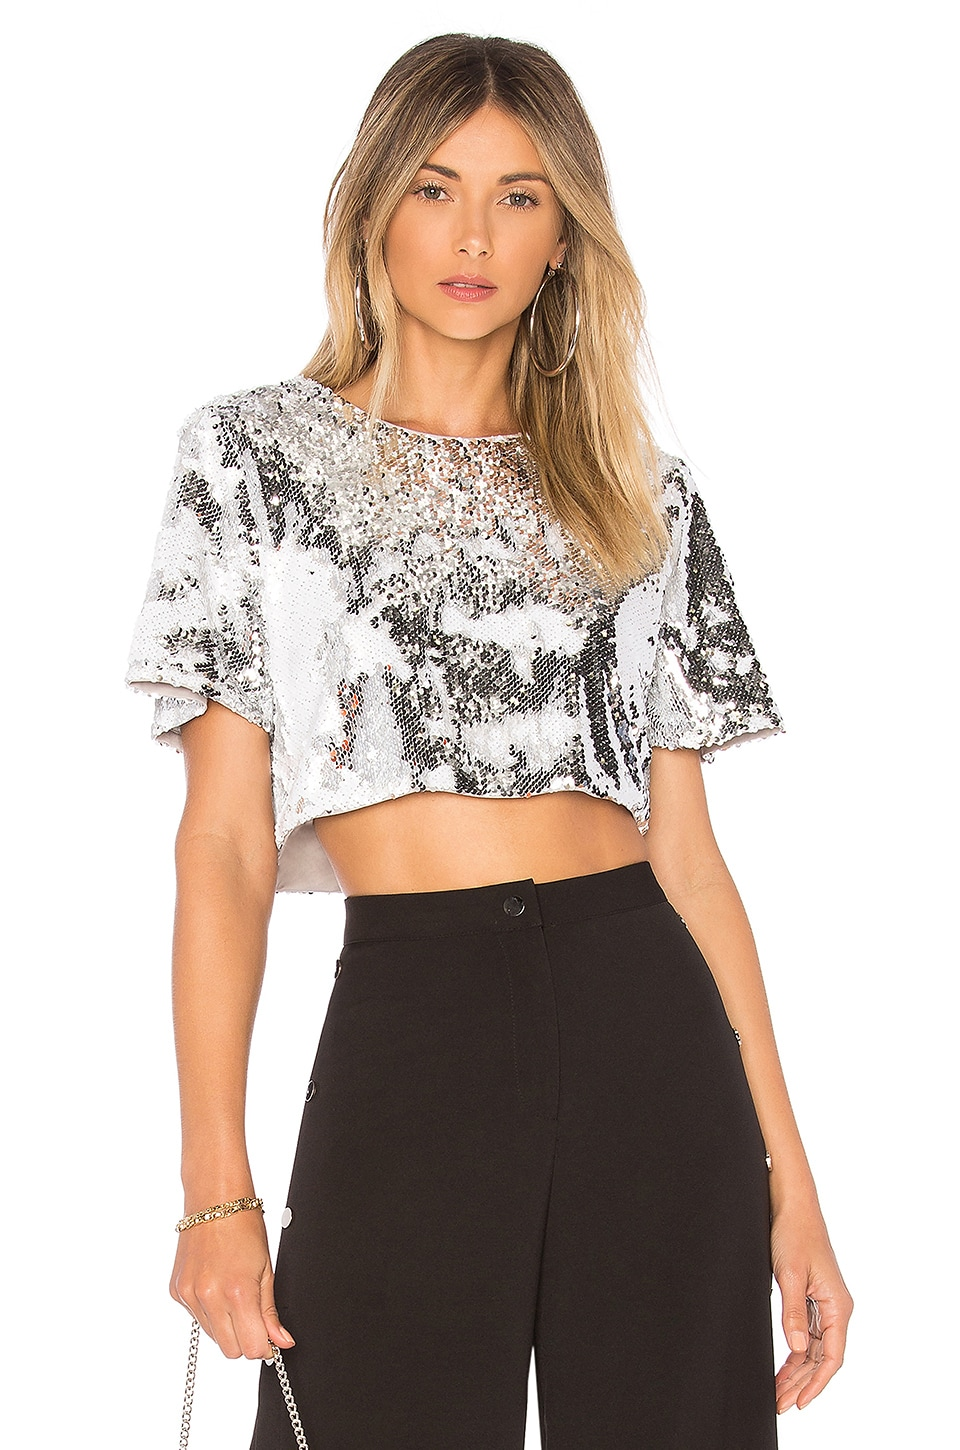 Lovers + Friends Raine Crop Top in Silver